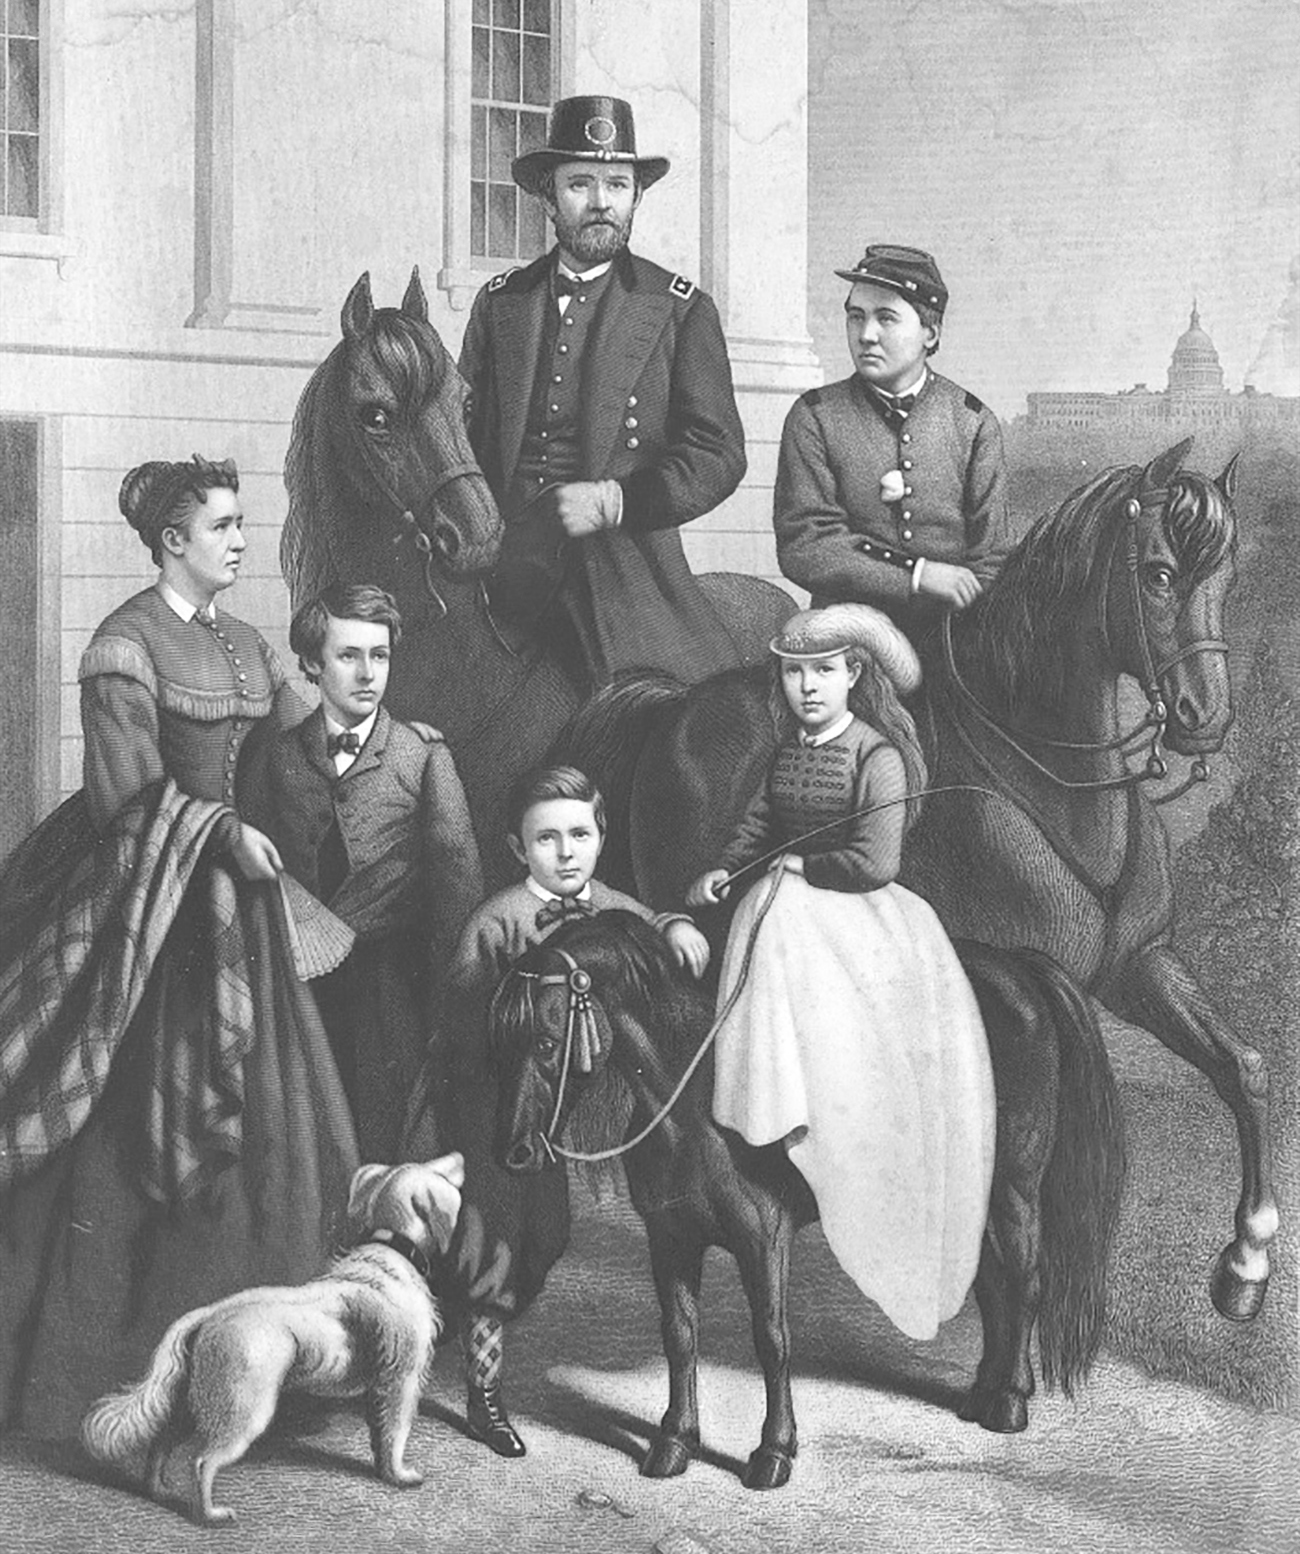 Picture of Ulysses S. Grant and family with their animals